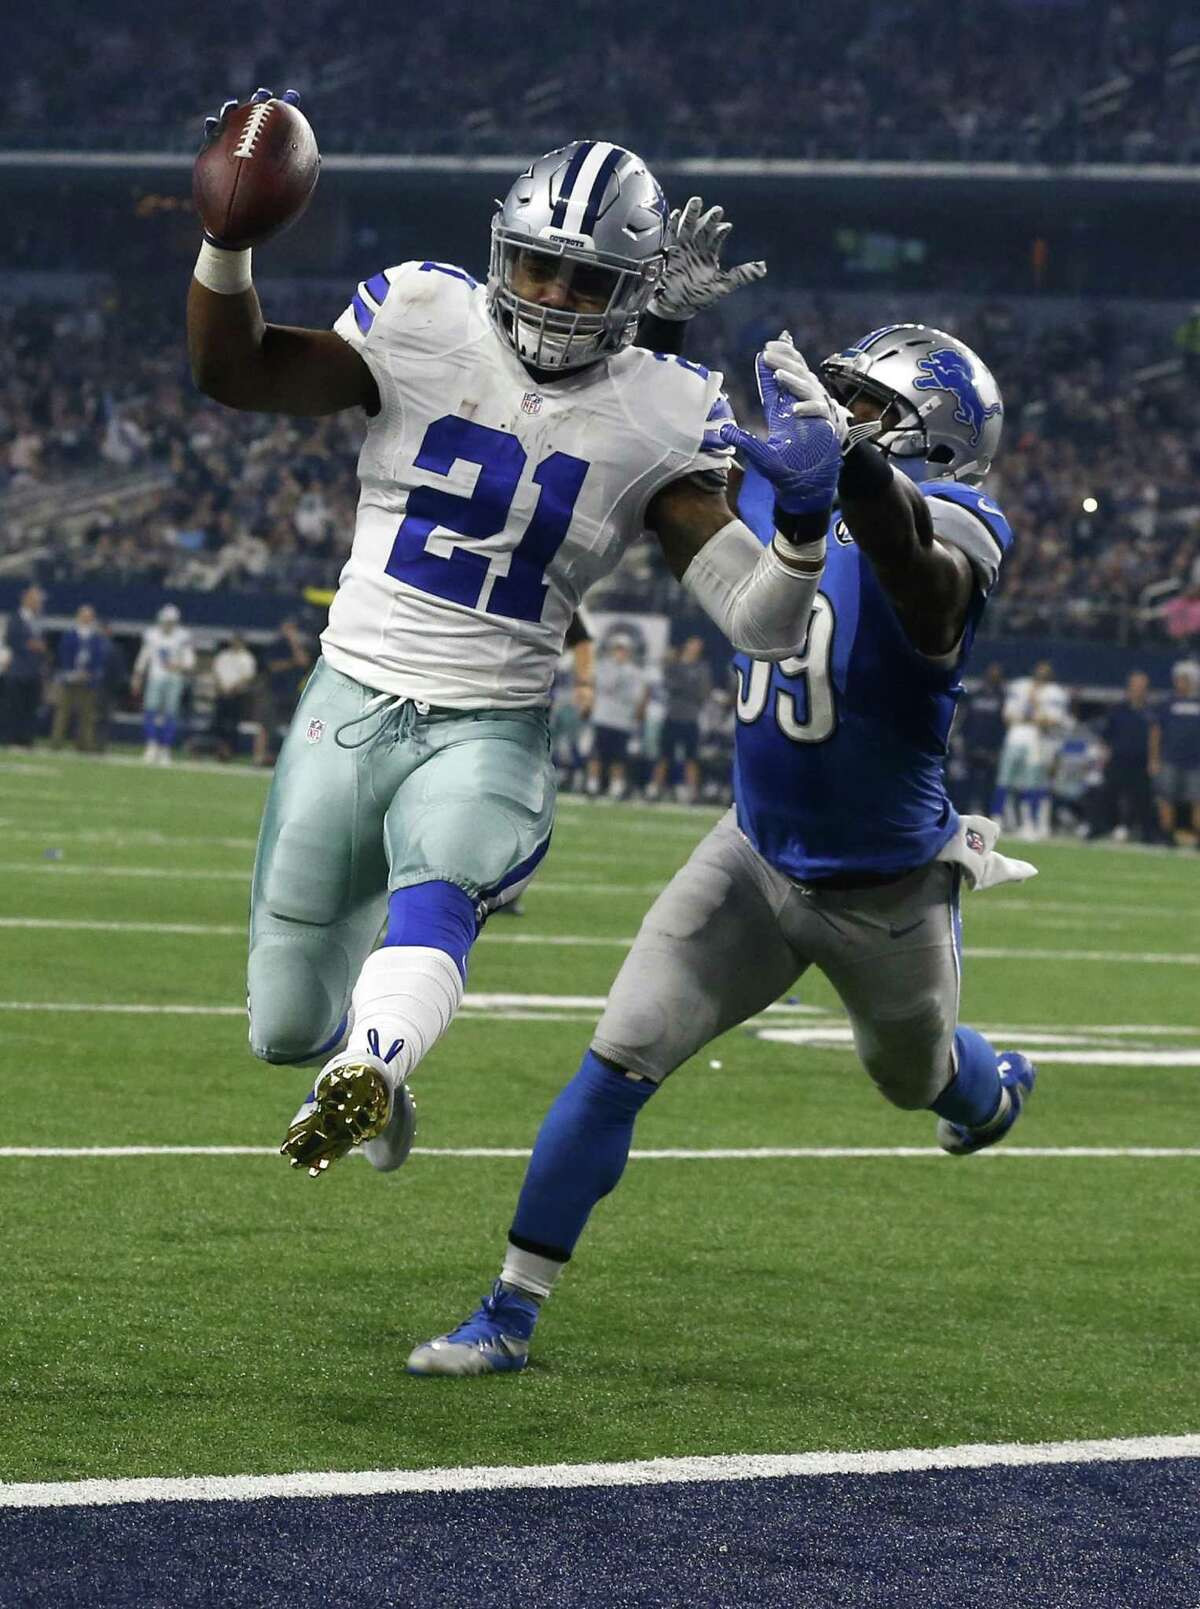 Ezekiel Elliott leaps into the end zone ahead of Detroit's Tahir Whitehead for a second-half touchdown during Dallas' victory at AT&T Stadium.